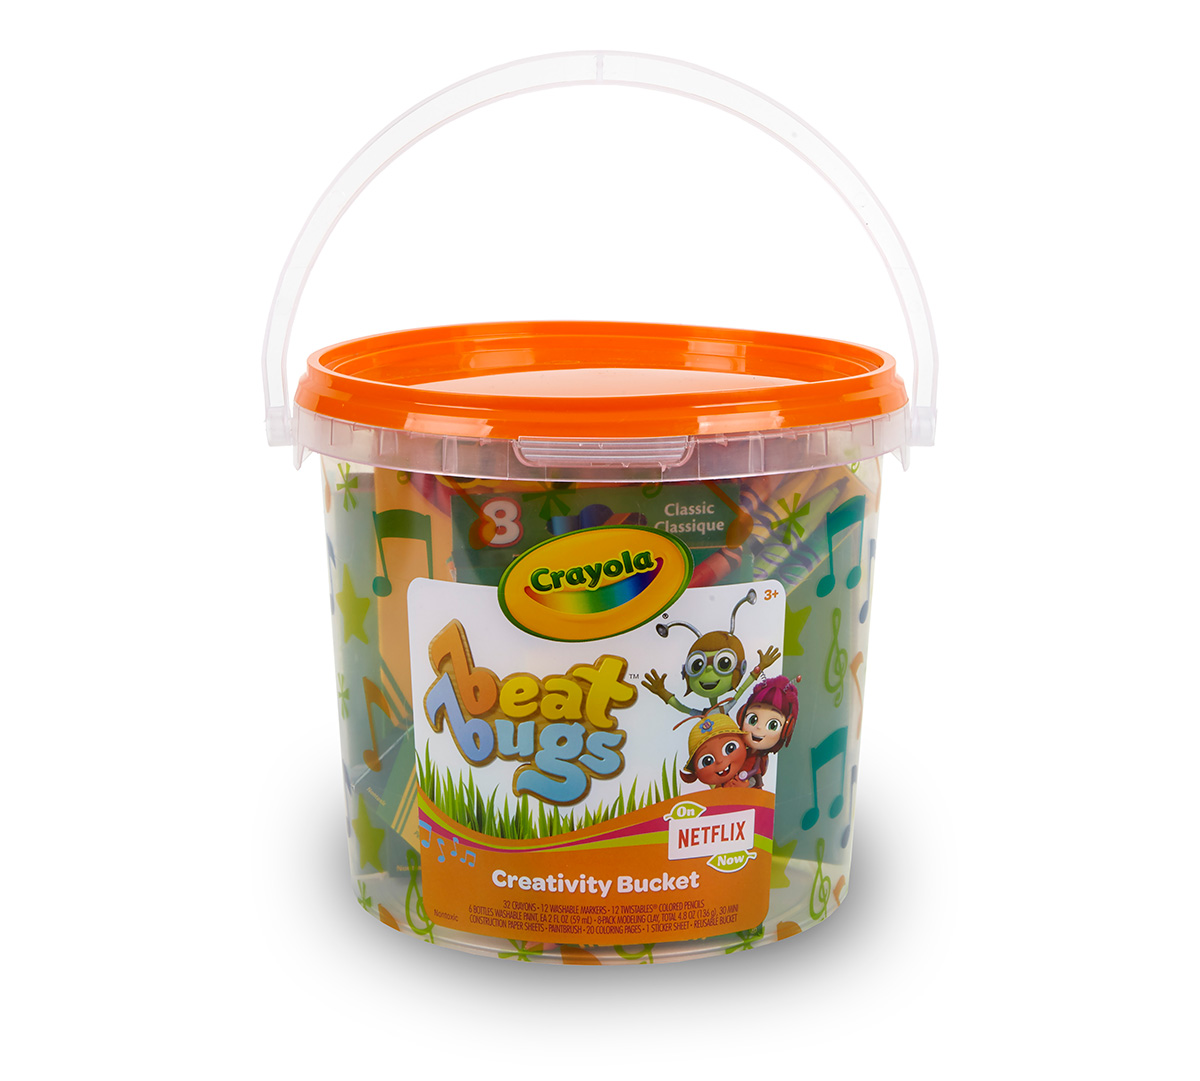 Beat Bugs Creativity Bucket